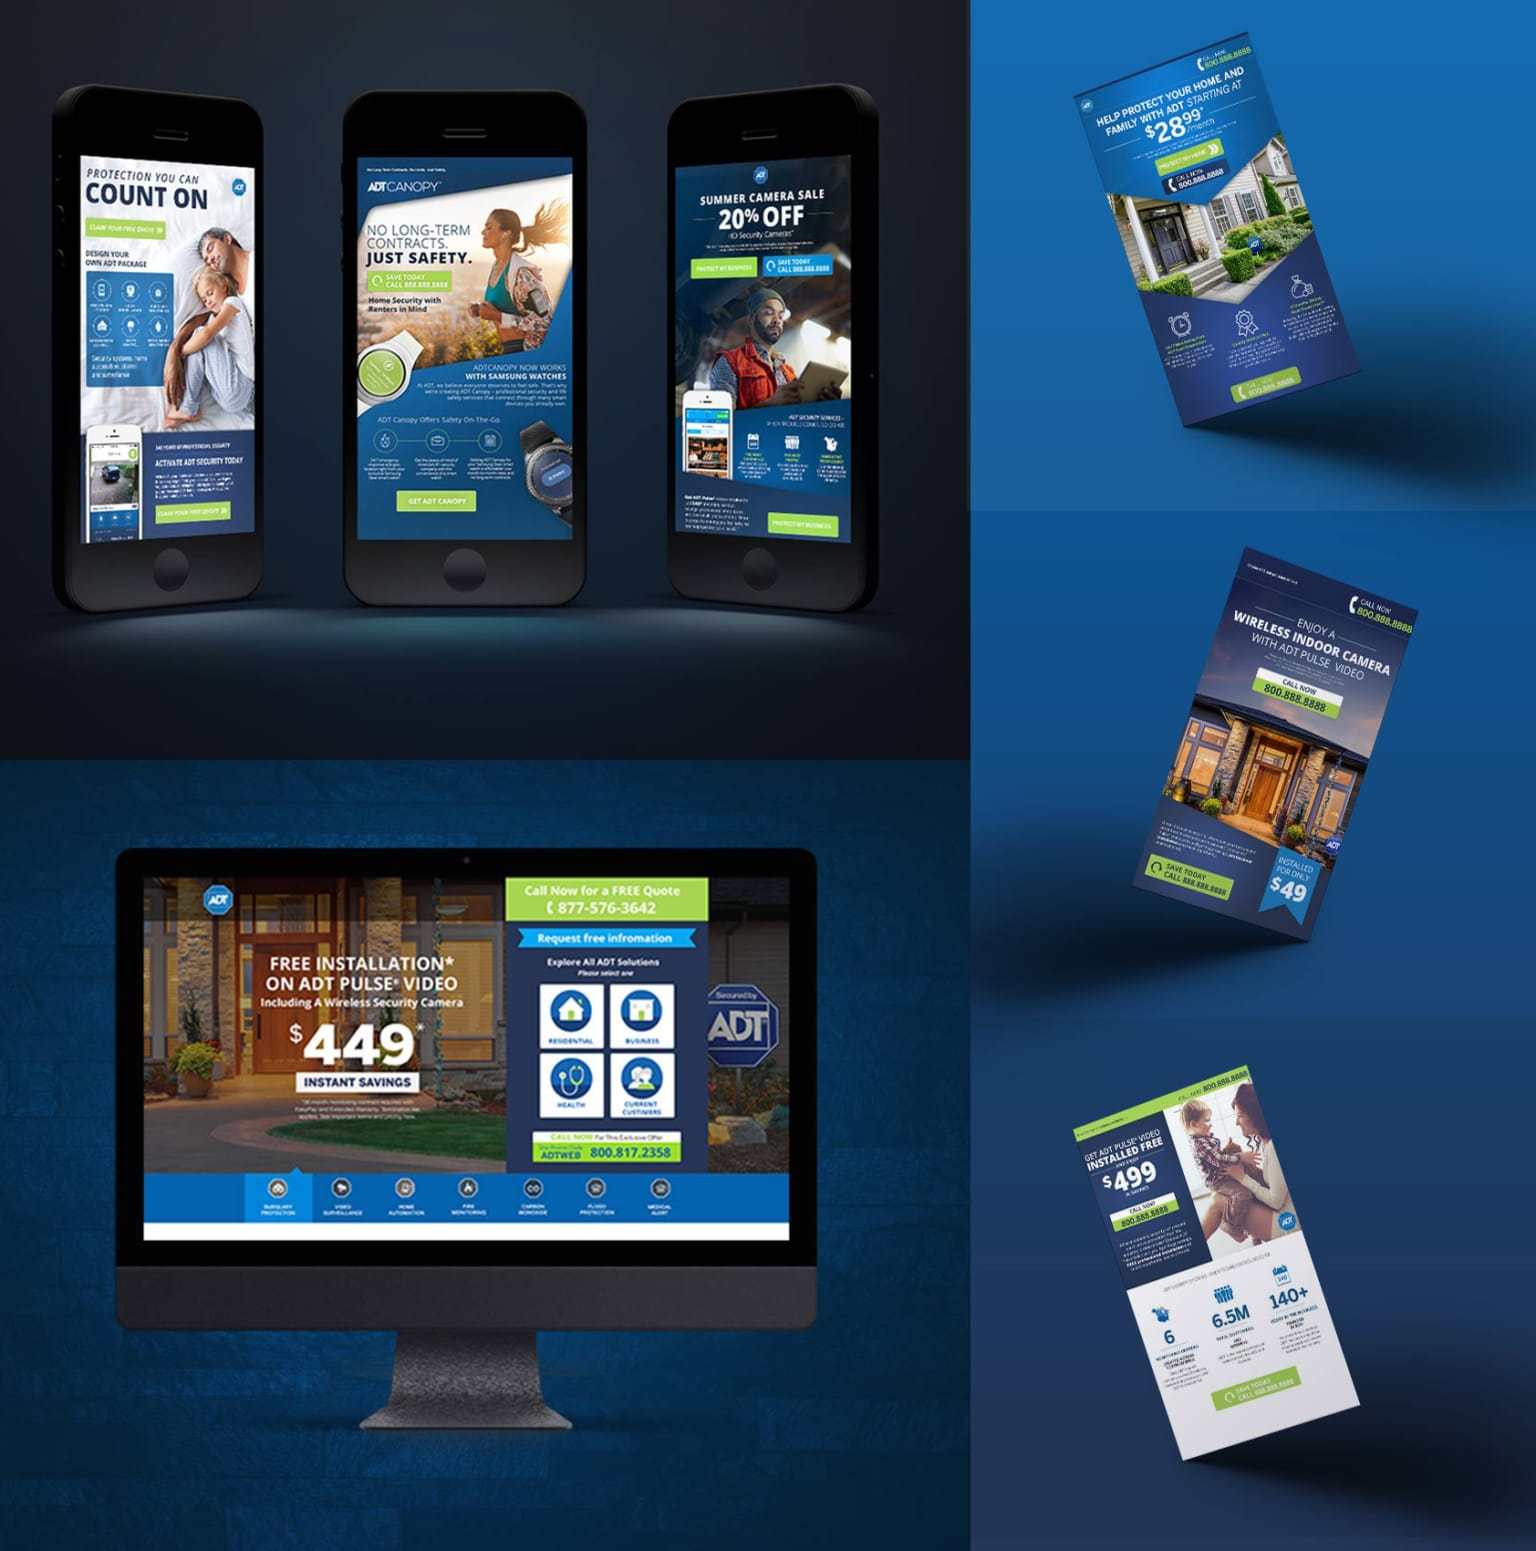 ADT email campaign